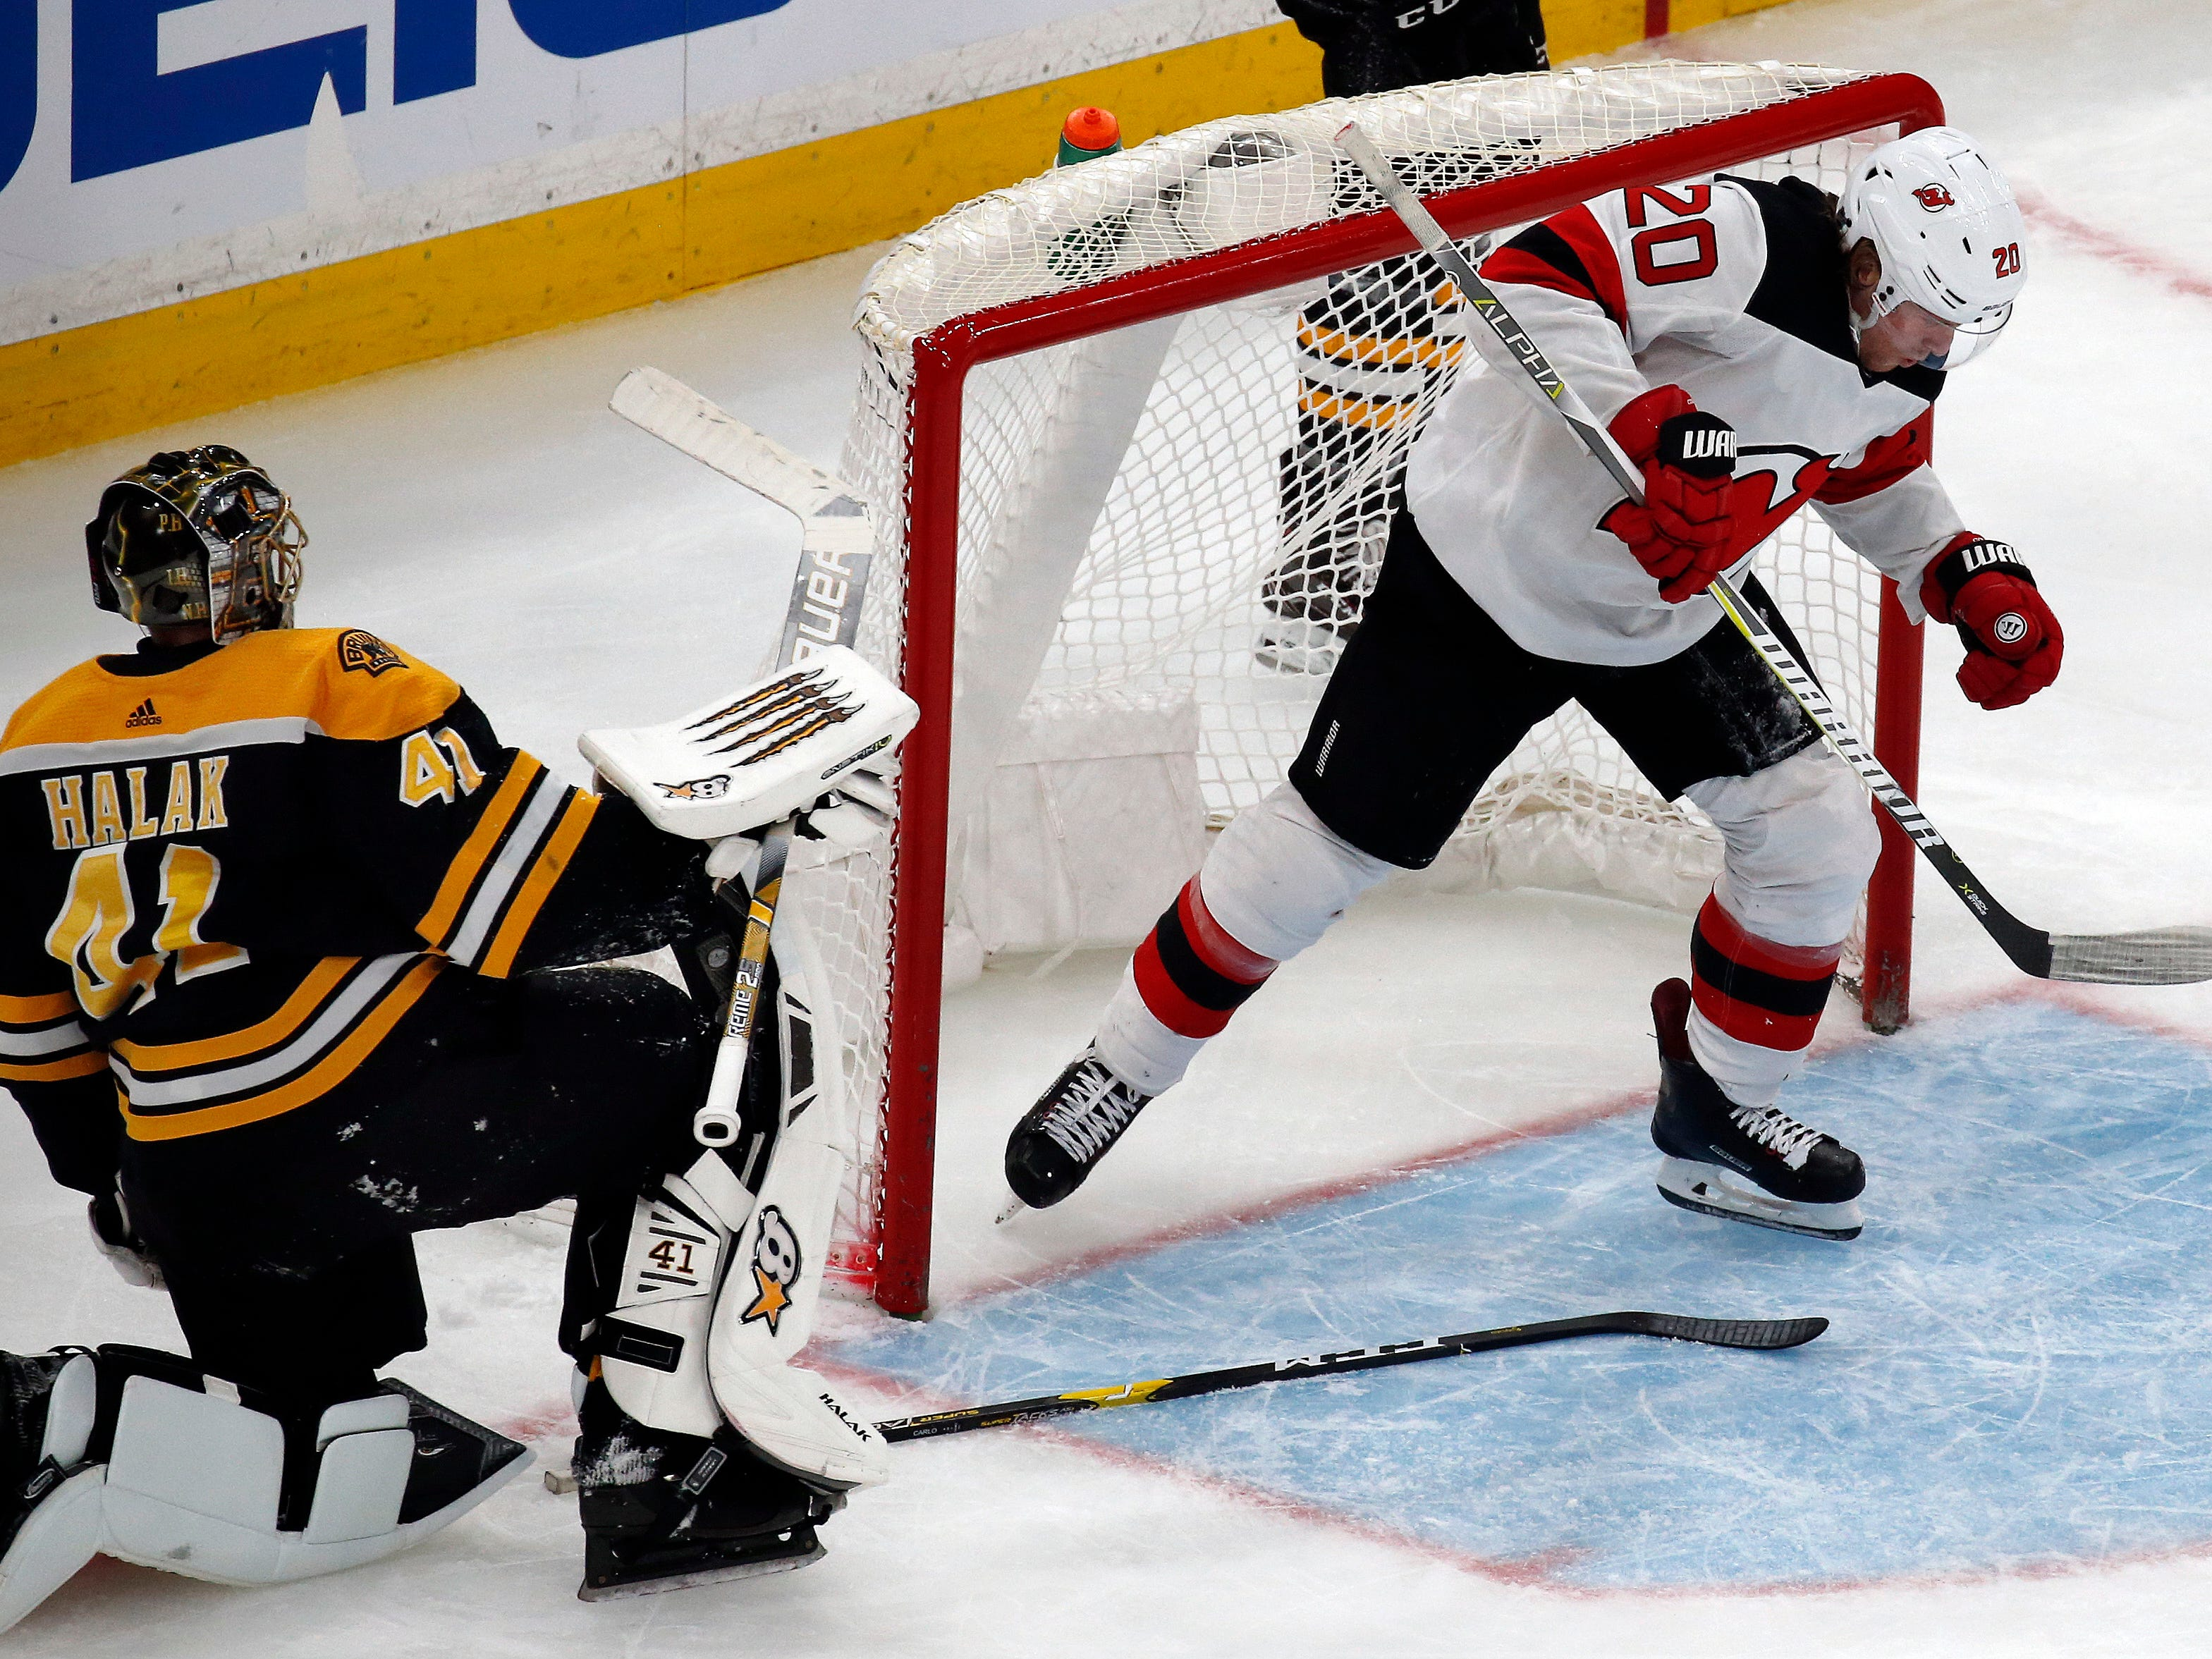 New Jersey Devils center Blake Coleman (20) comes out of the net after scoring a breakaway goal against Boston Bruins goaltender Jaroslav Halak (41) during the third period of an NHL hockey game Thursday, Dec. 27, 2018, in Boston.